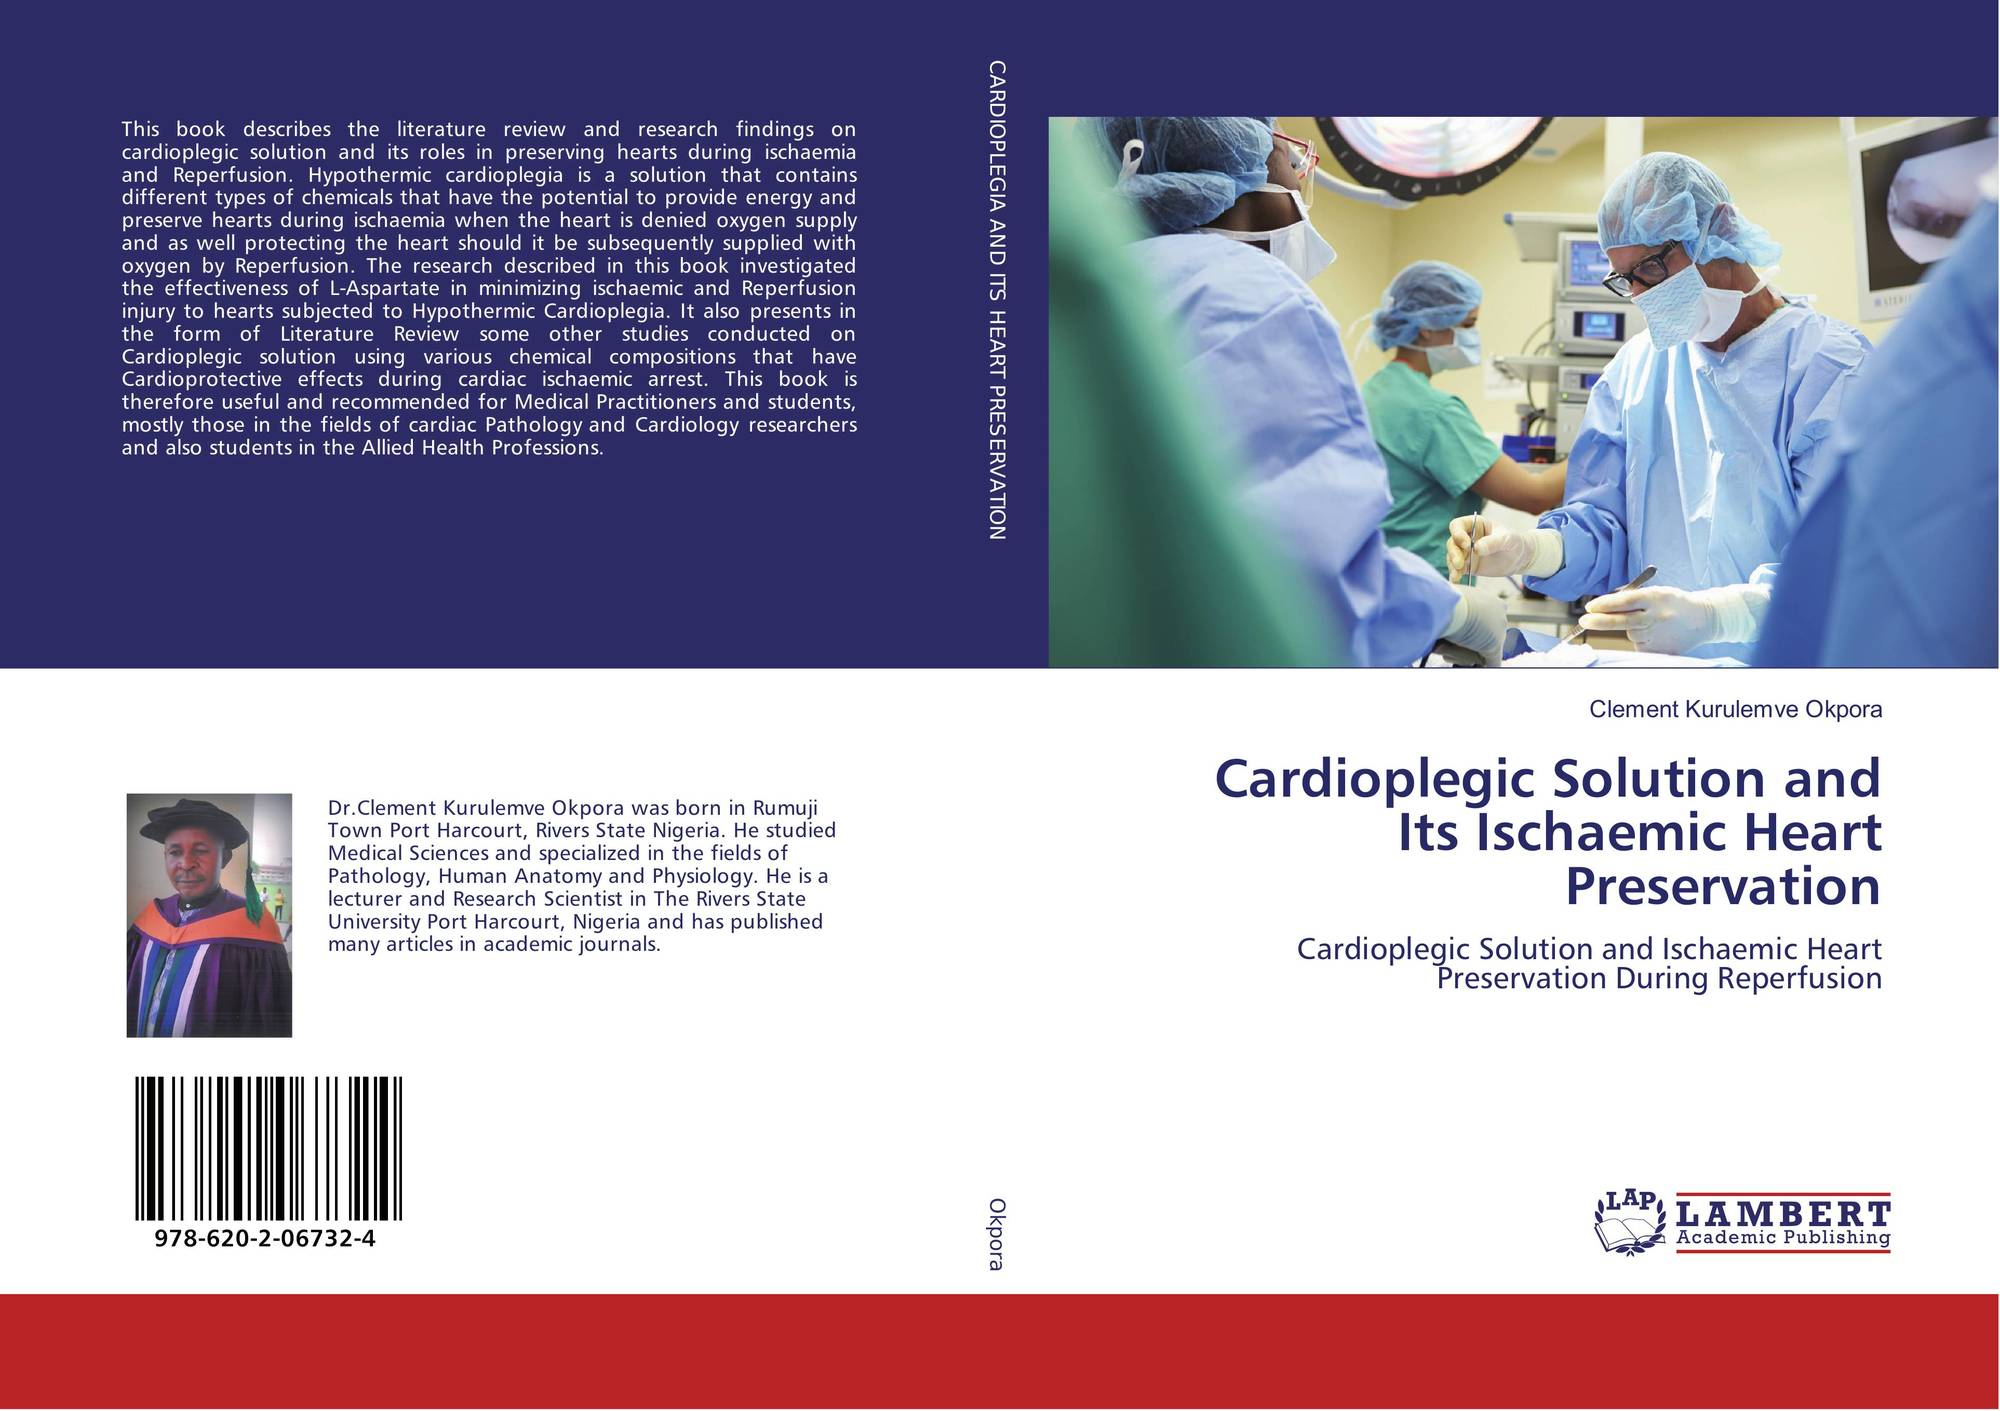 Cardioplegic Solution and Its Ischaemic Heart Preservation